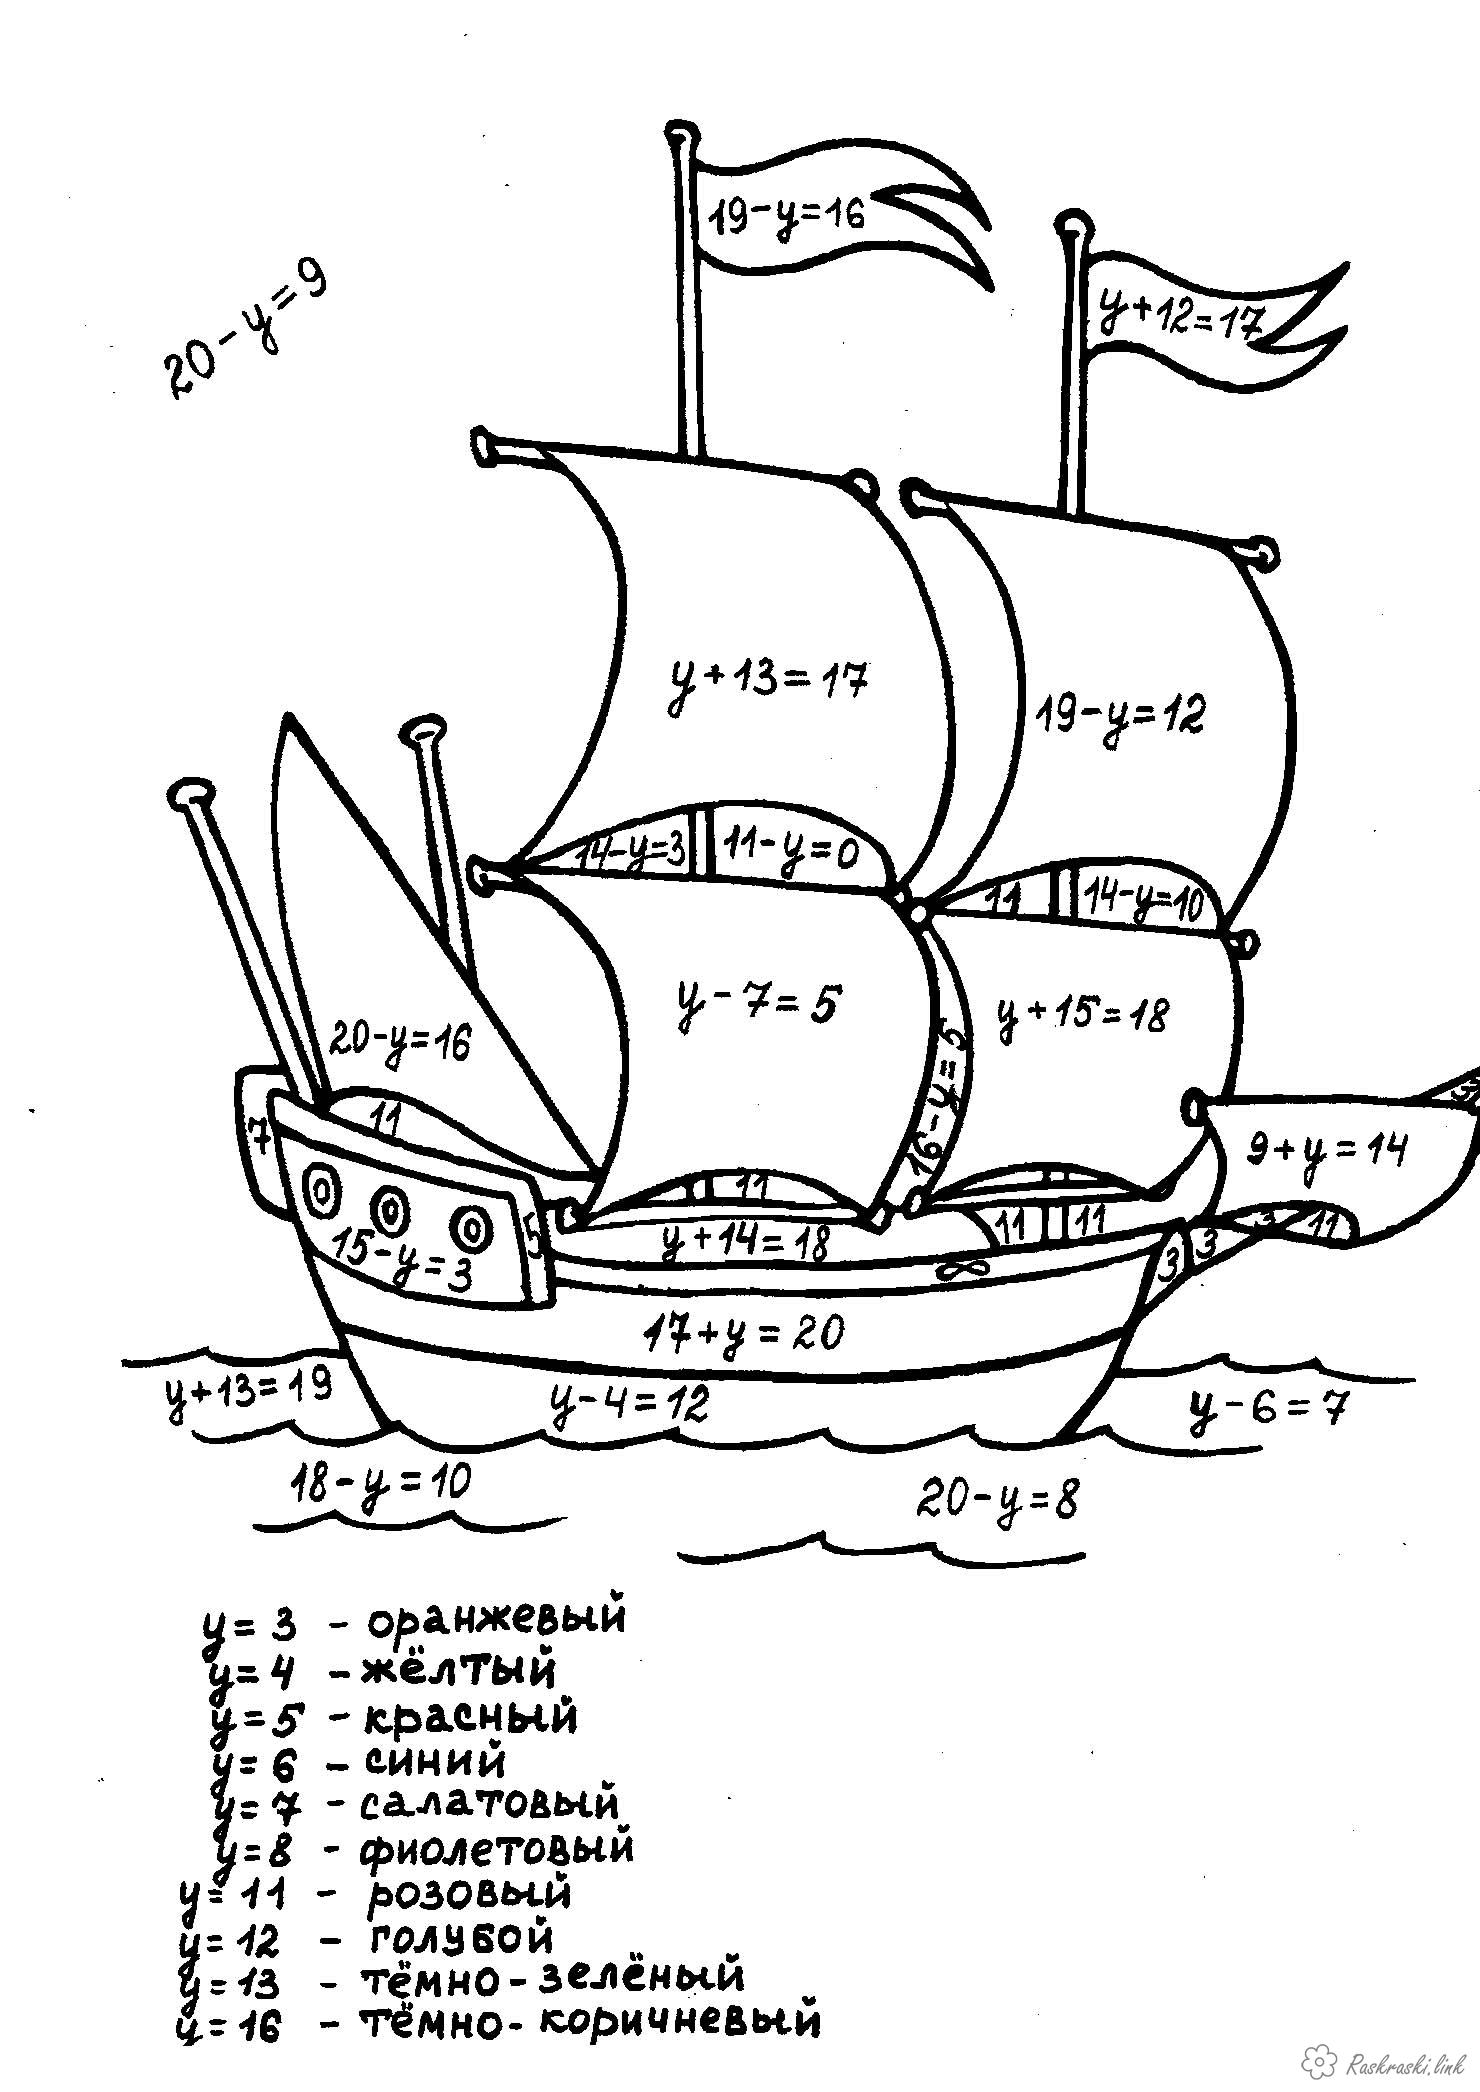 Coloring coloring pages Math Grade 3 The ship equation, coloring pages Grade 3